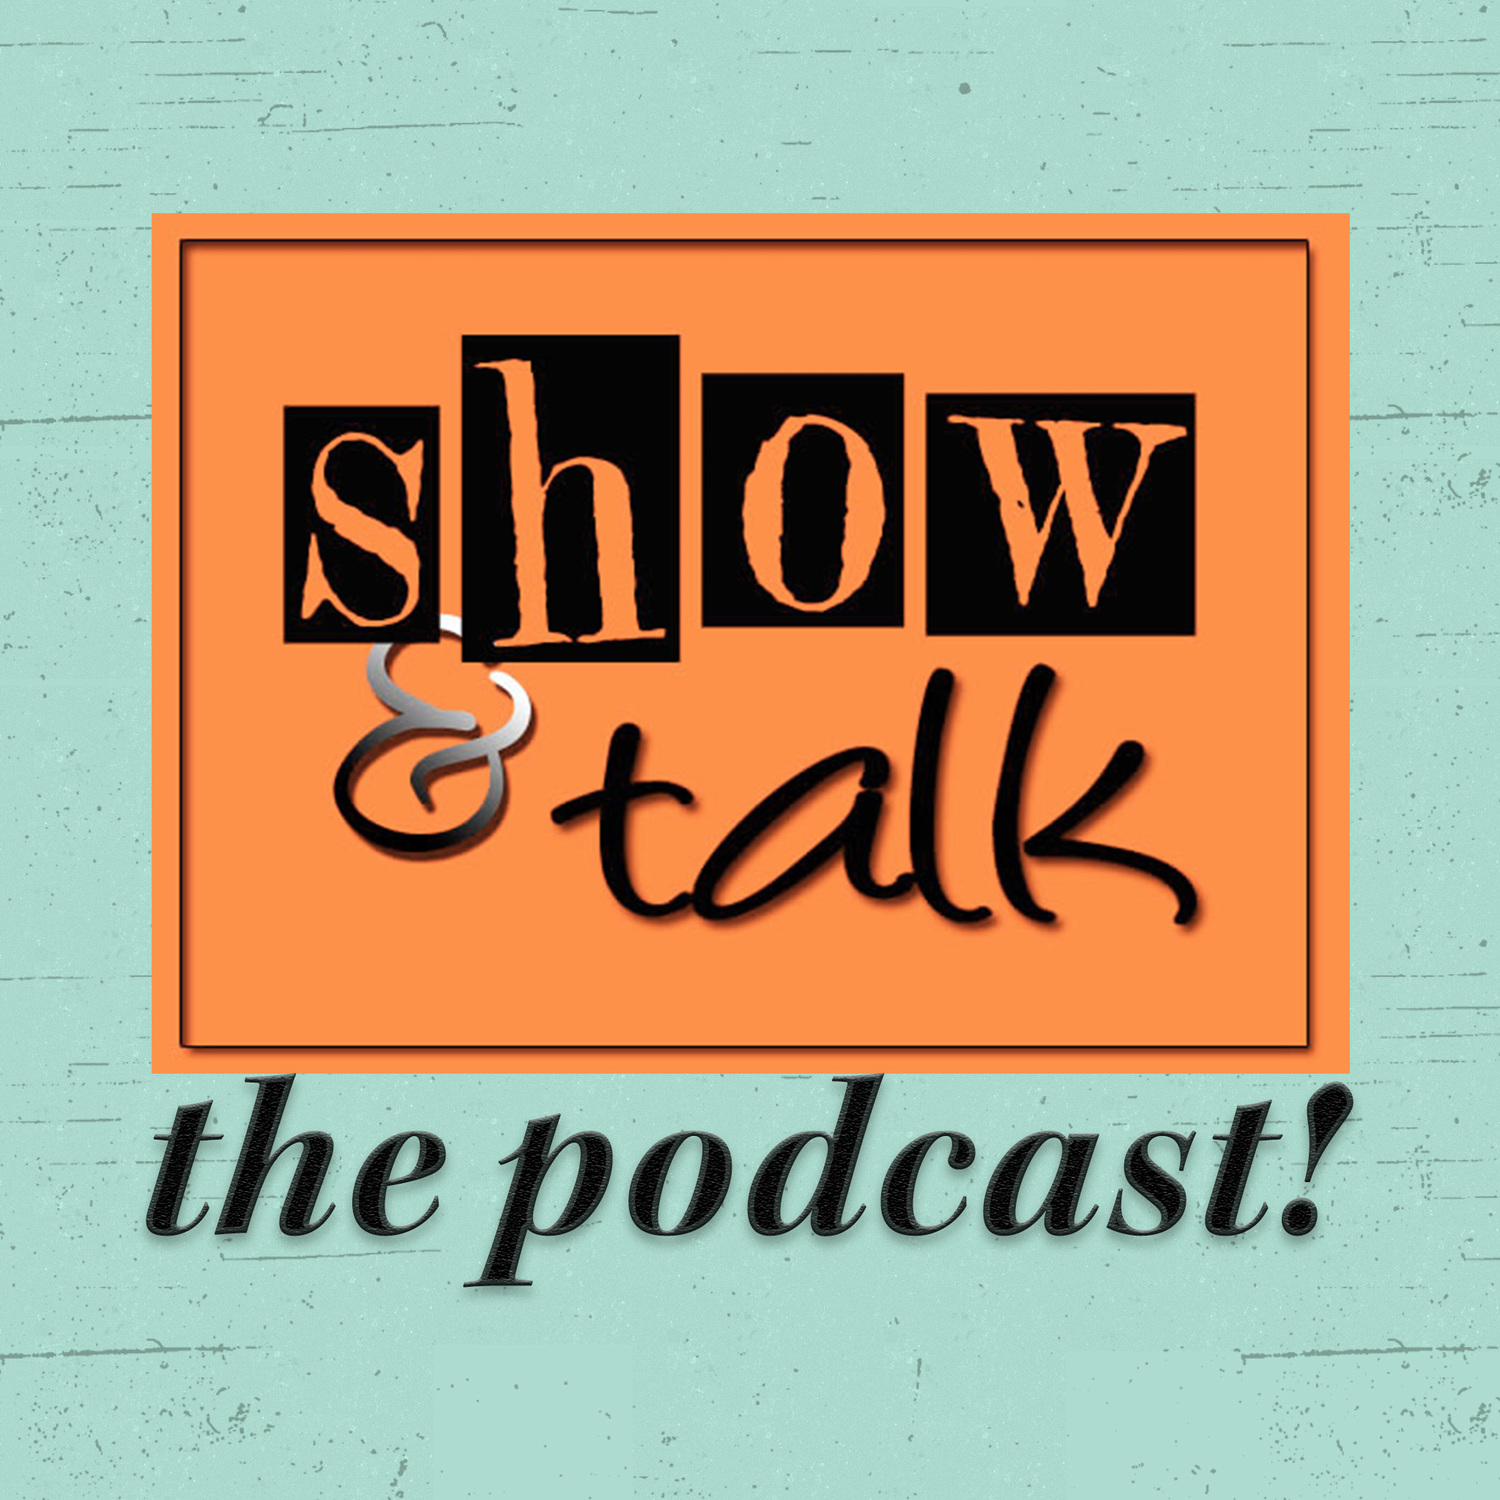 Show and Talk - The Podcast! - Show and Talk